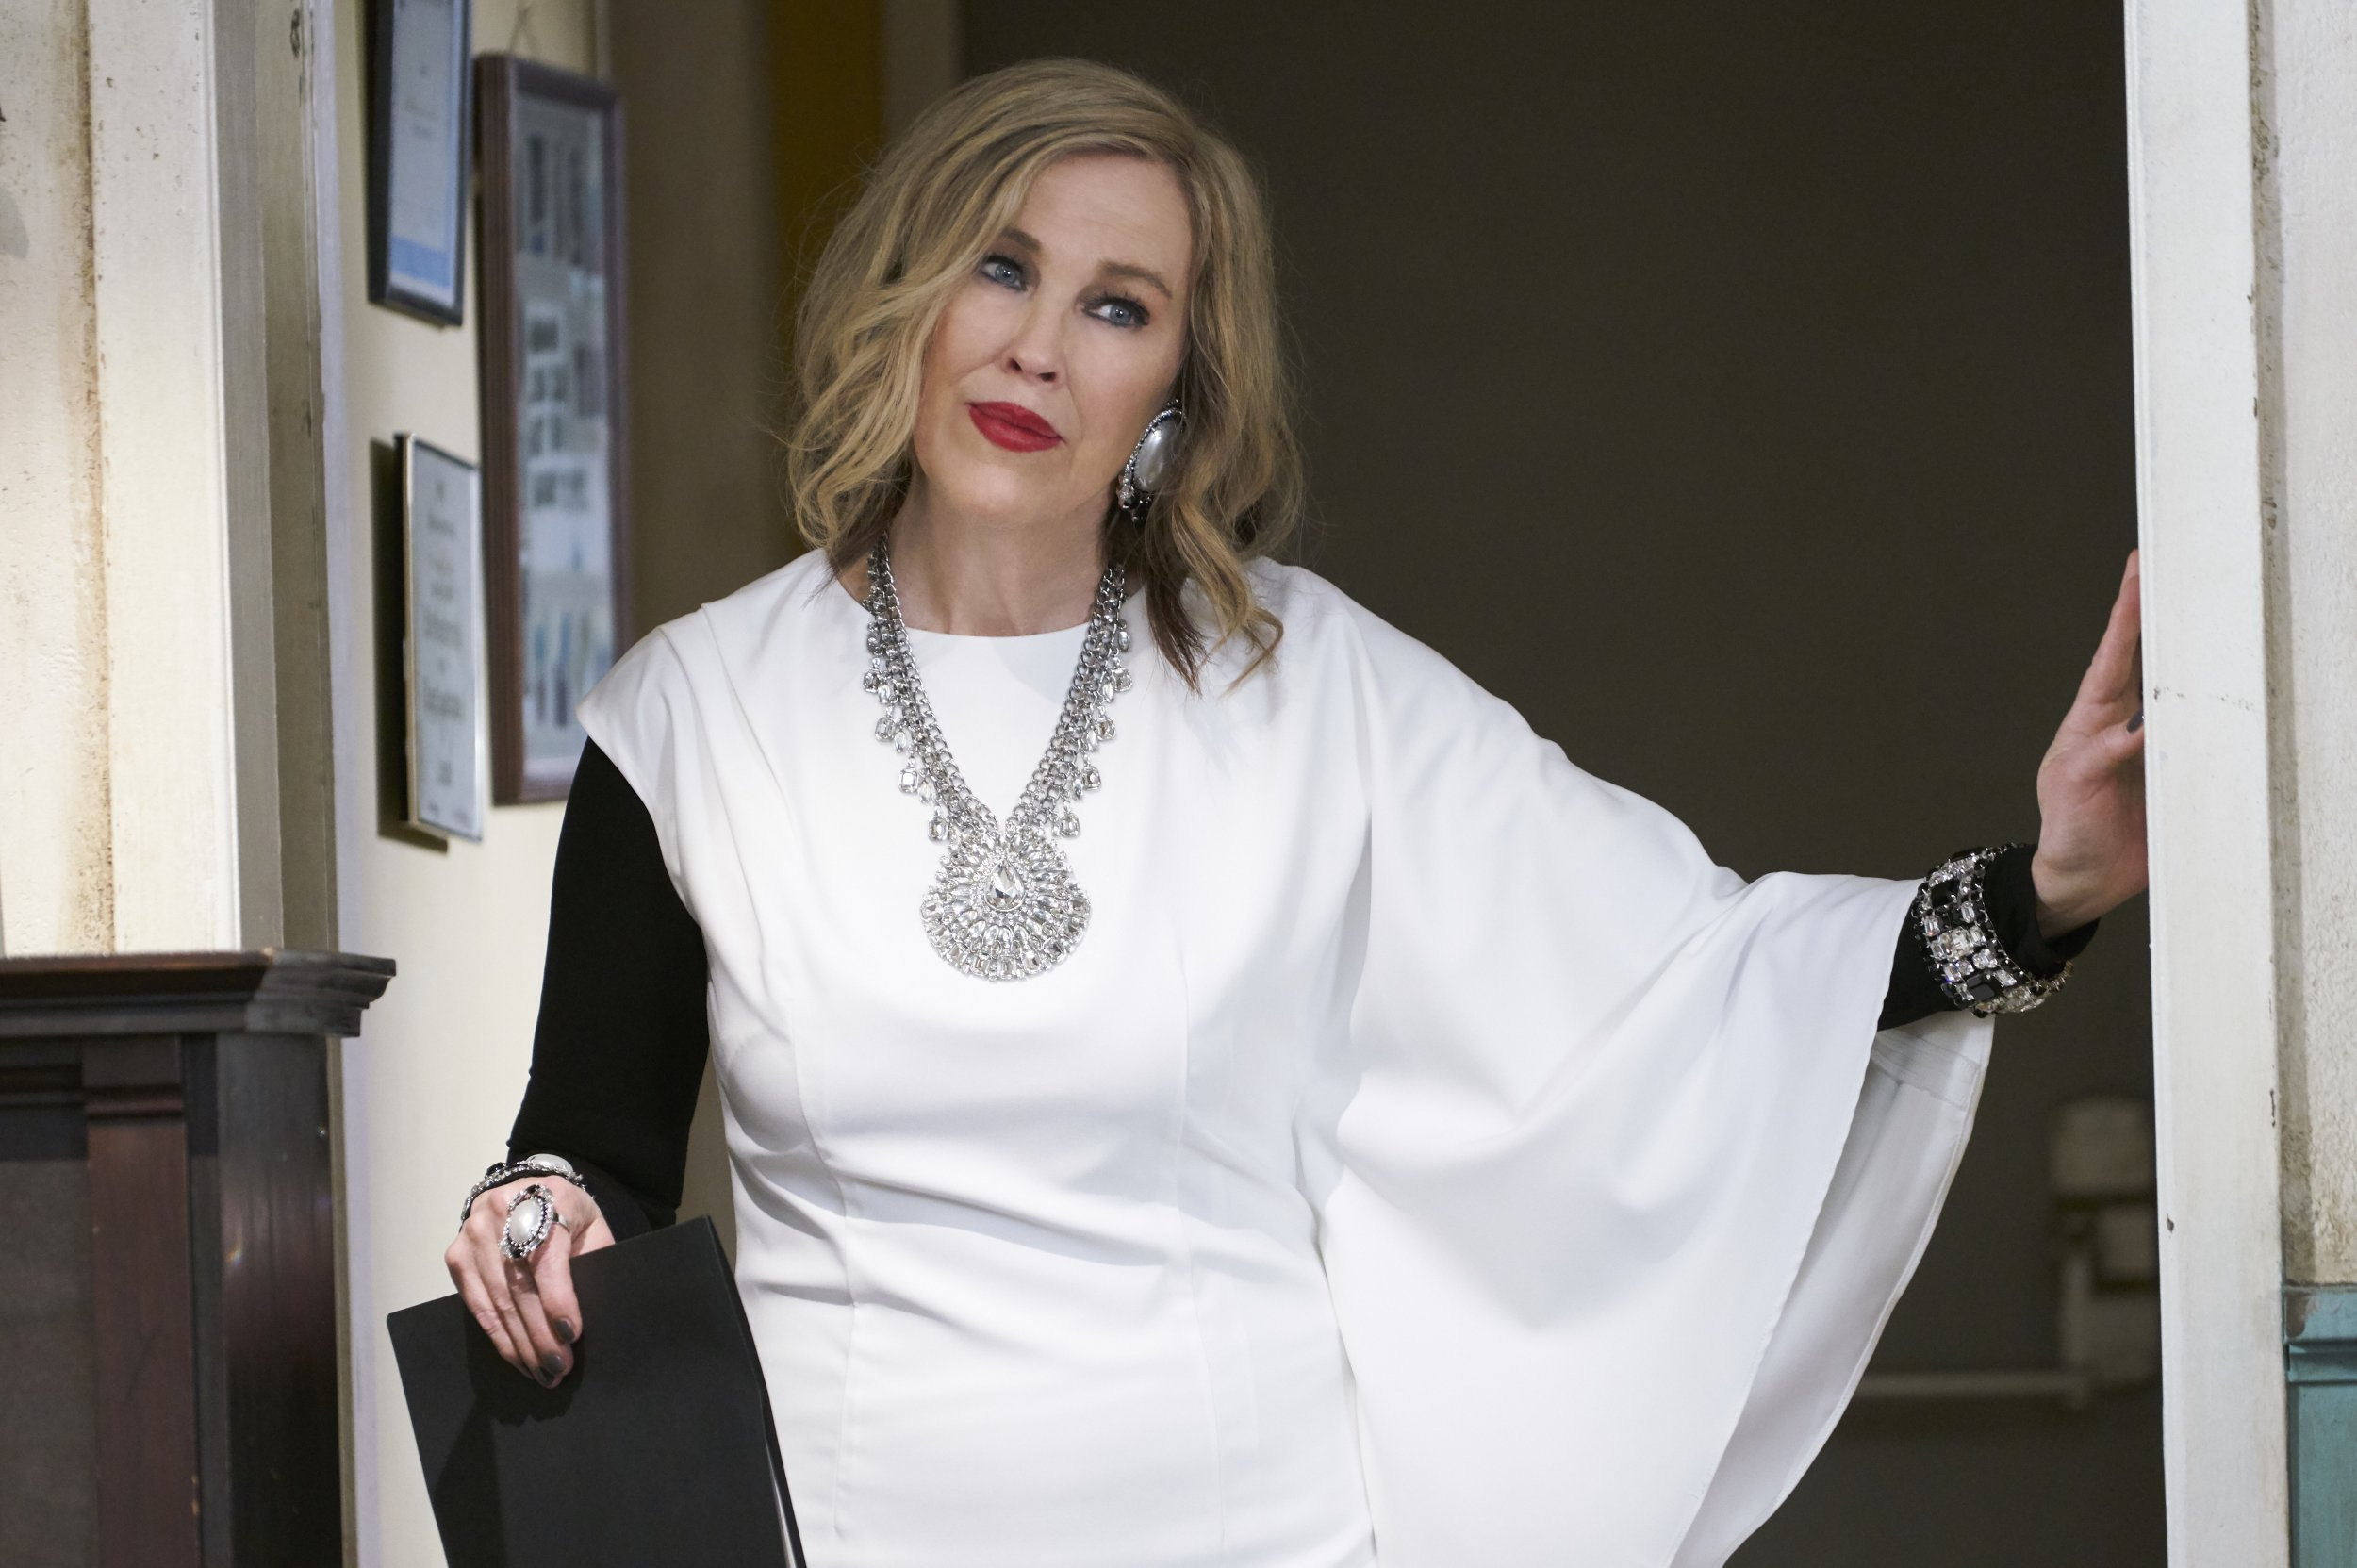 Catherine O'Hara on 'Schitt's Creek' Season 5 and Finding